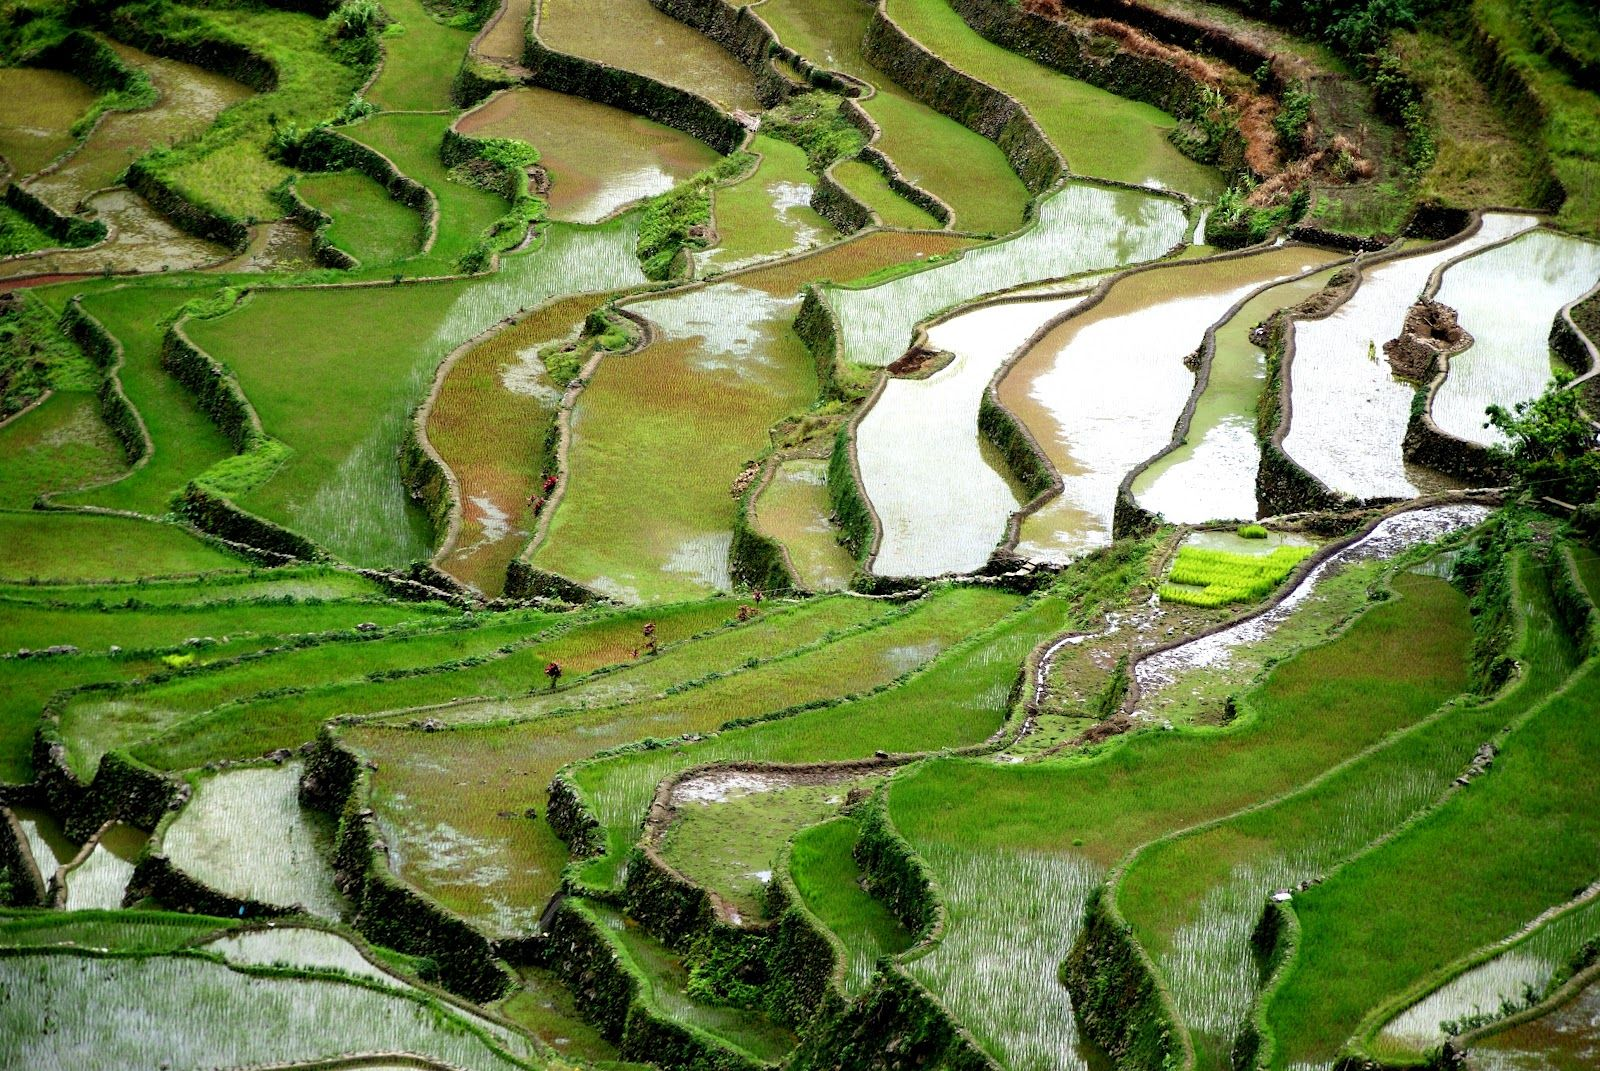 The Banaue Rice Terraces is one of the UNESCO World Heritage sites in the Philippines.